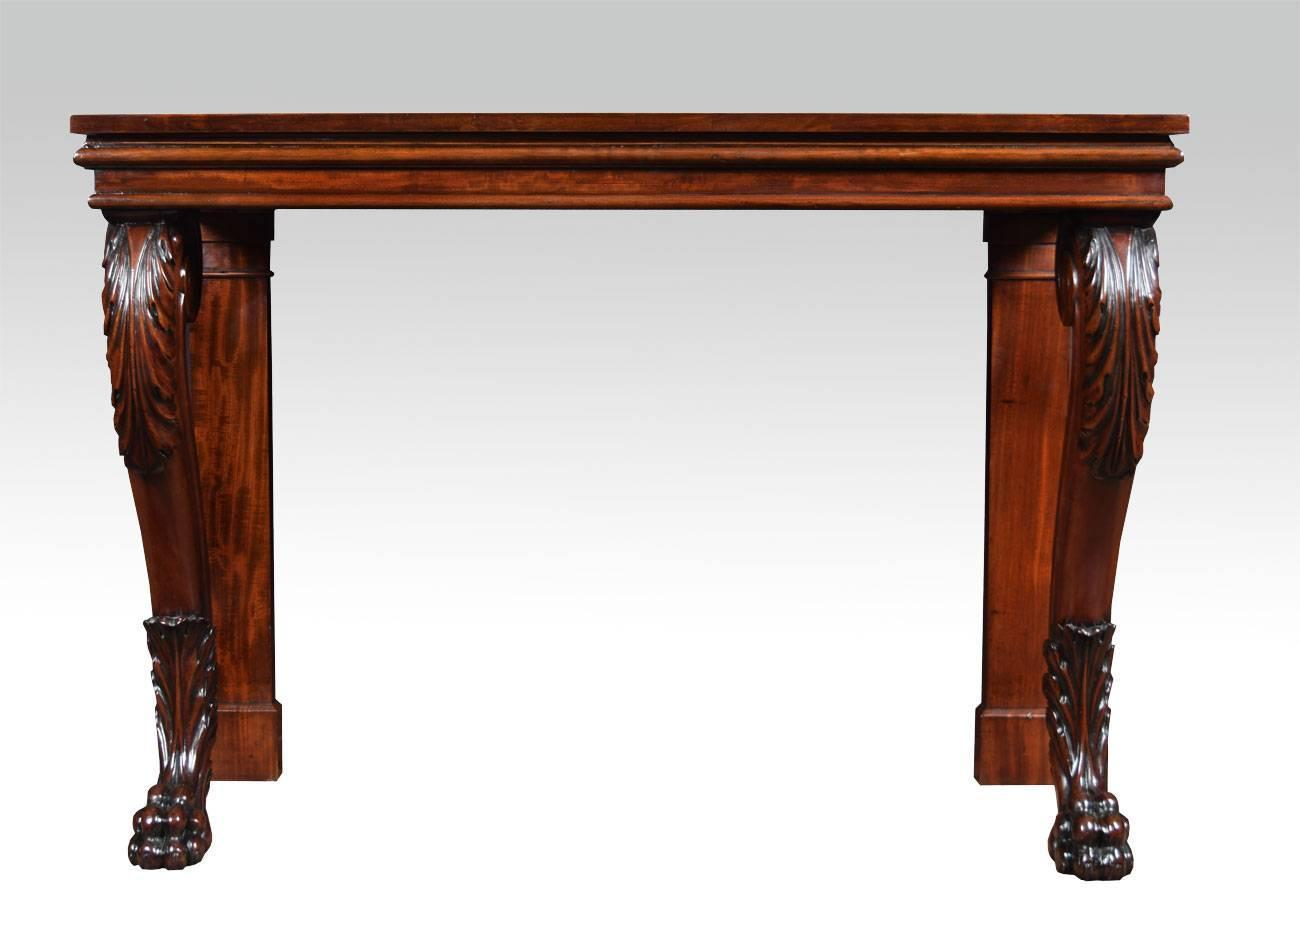 Regency mahogany console table for sale at 1stdibs for 10 inch depth console table